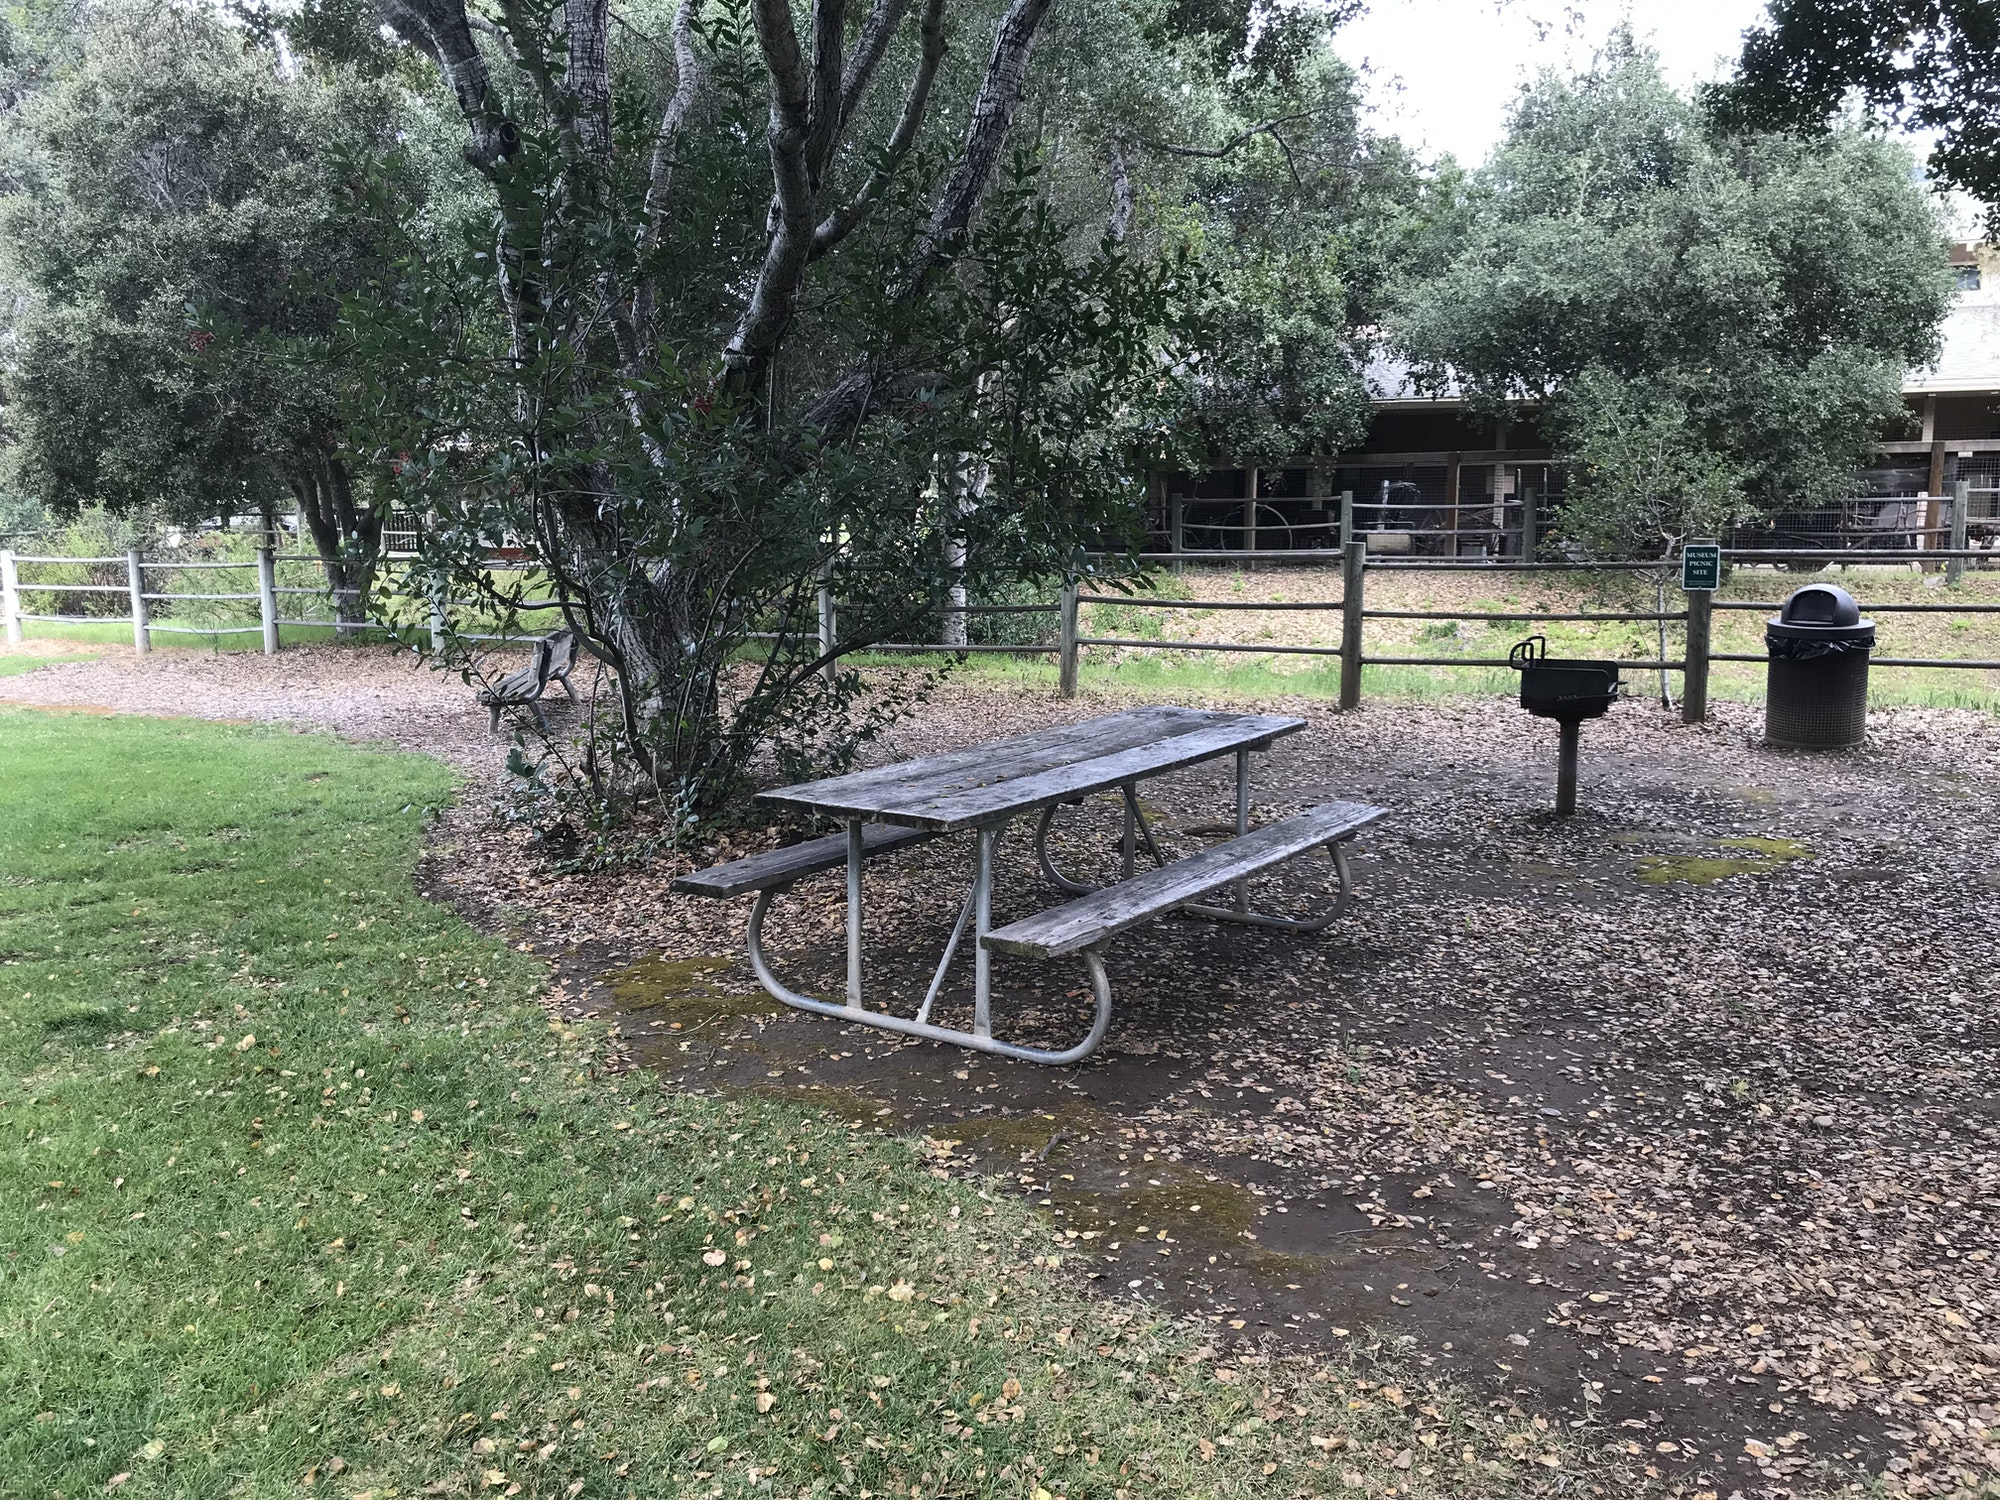 East side picnic area with table, small BBQ grill and grass